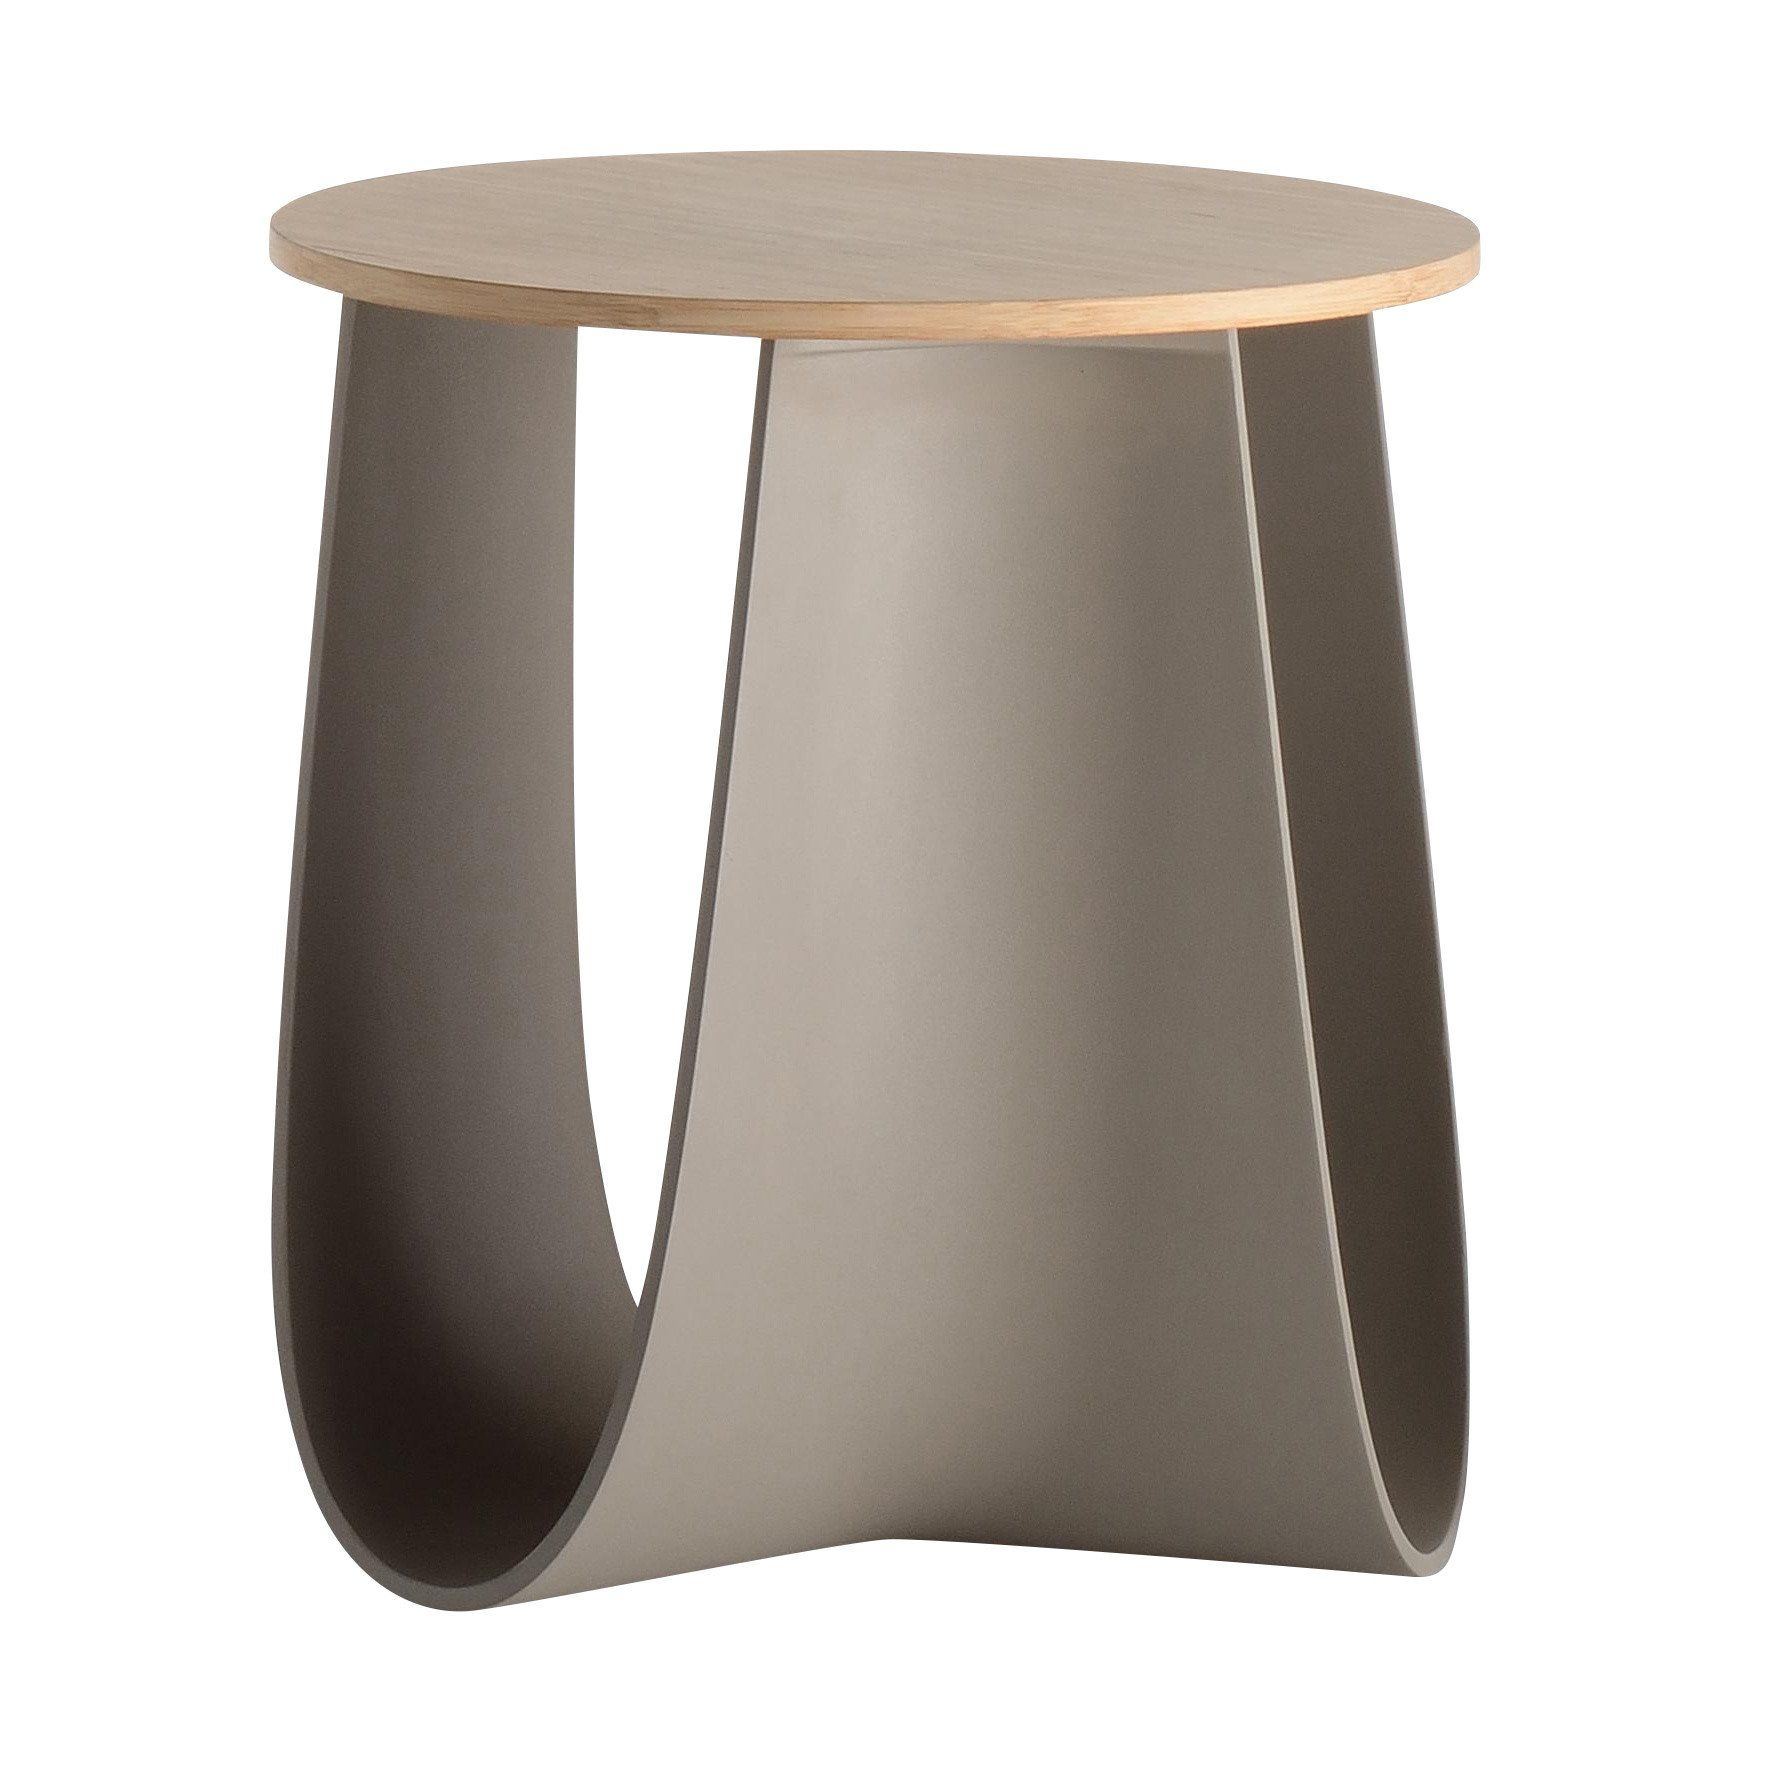 Mdf Italia Sag Stool Side Table Ambientedirect